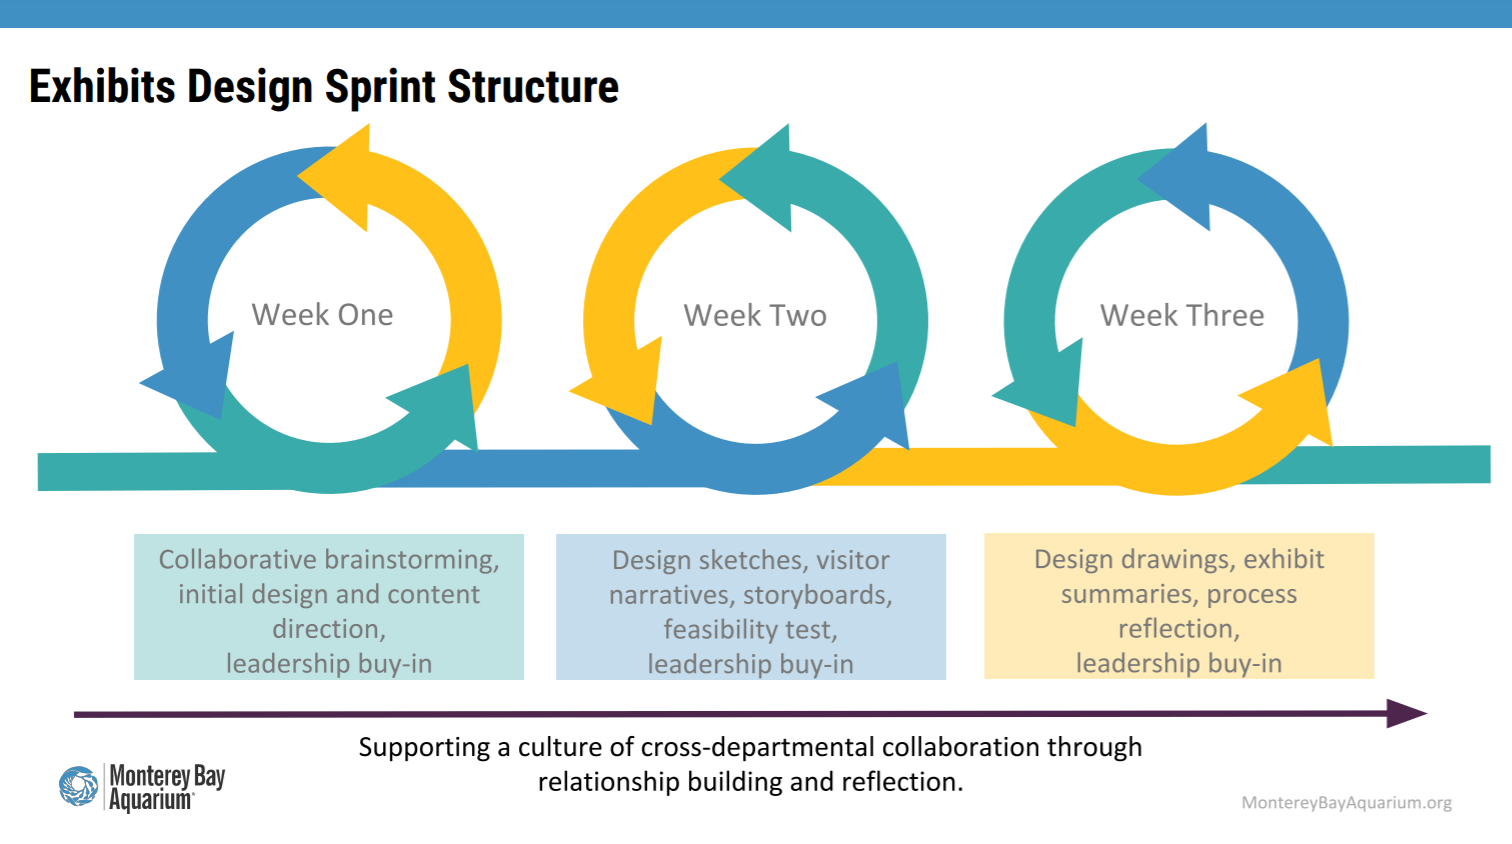 "A graphic with the Monterey Bay Aquarium logo titled ""Exhibits Design Sprint Structure,"" reading ""Week One: collaborative brainstorming, initial design and content direction, leadership buy-in;"" ""Week Two: Design sketches, visitor narratives, storyboards, feasibility test, leadership buy-in;"" and ""Week Three: Design drawings, exhibit summaries, process reflection, leadership buy-in."" A caption underneath reads ""Supporting a culture of cross-departmental collaboration through relationship building and reflection."""